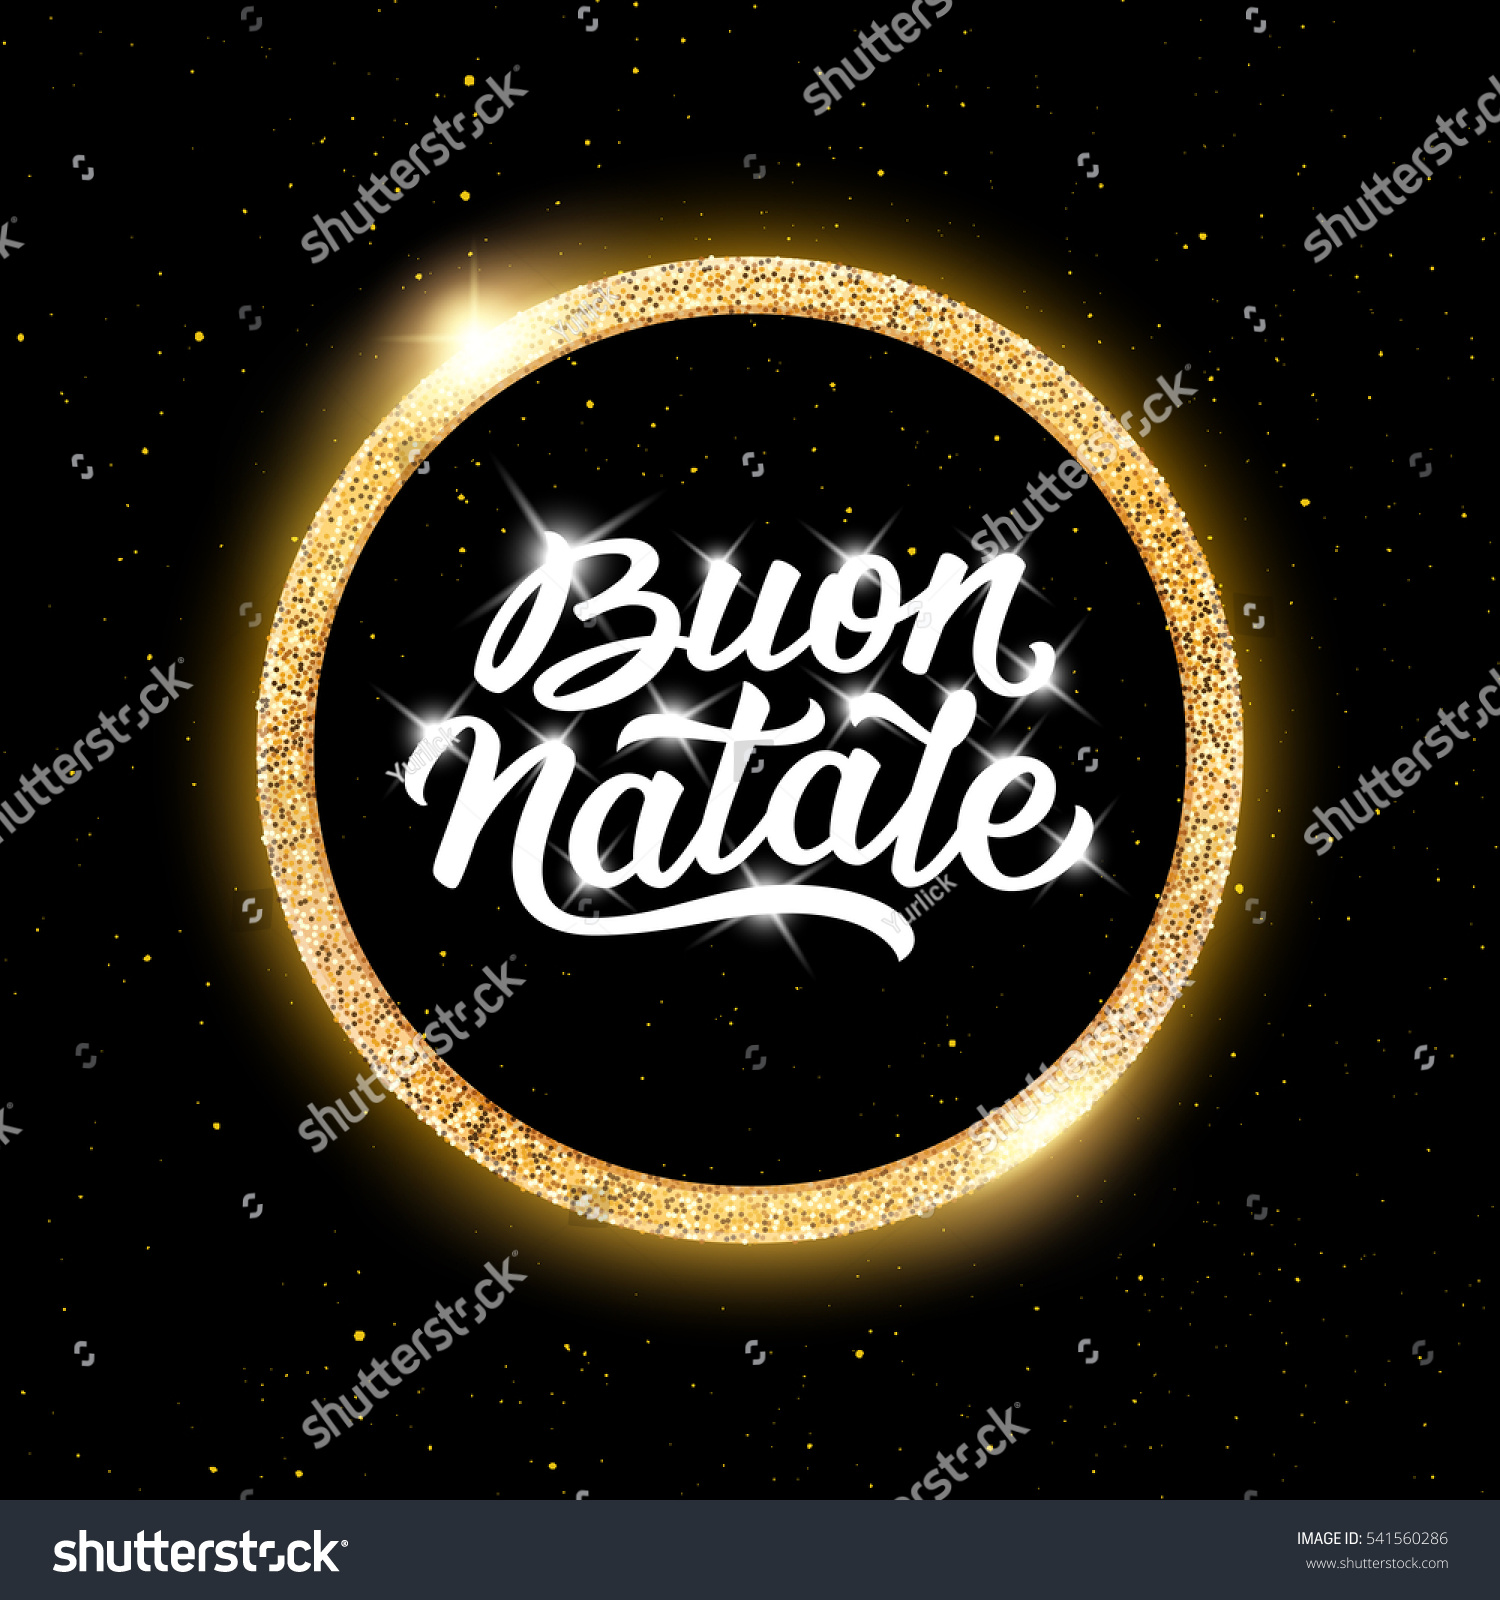 Merry christmas greetings text italian language stock illustration merry christmas greetings text in italian language in center of round golden frame on black background kristyandbryce Gallery